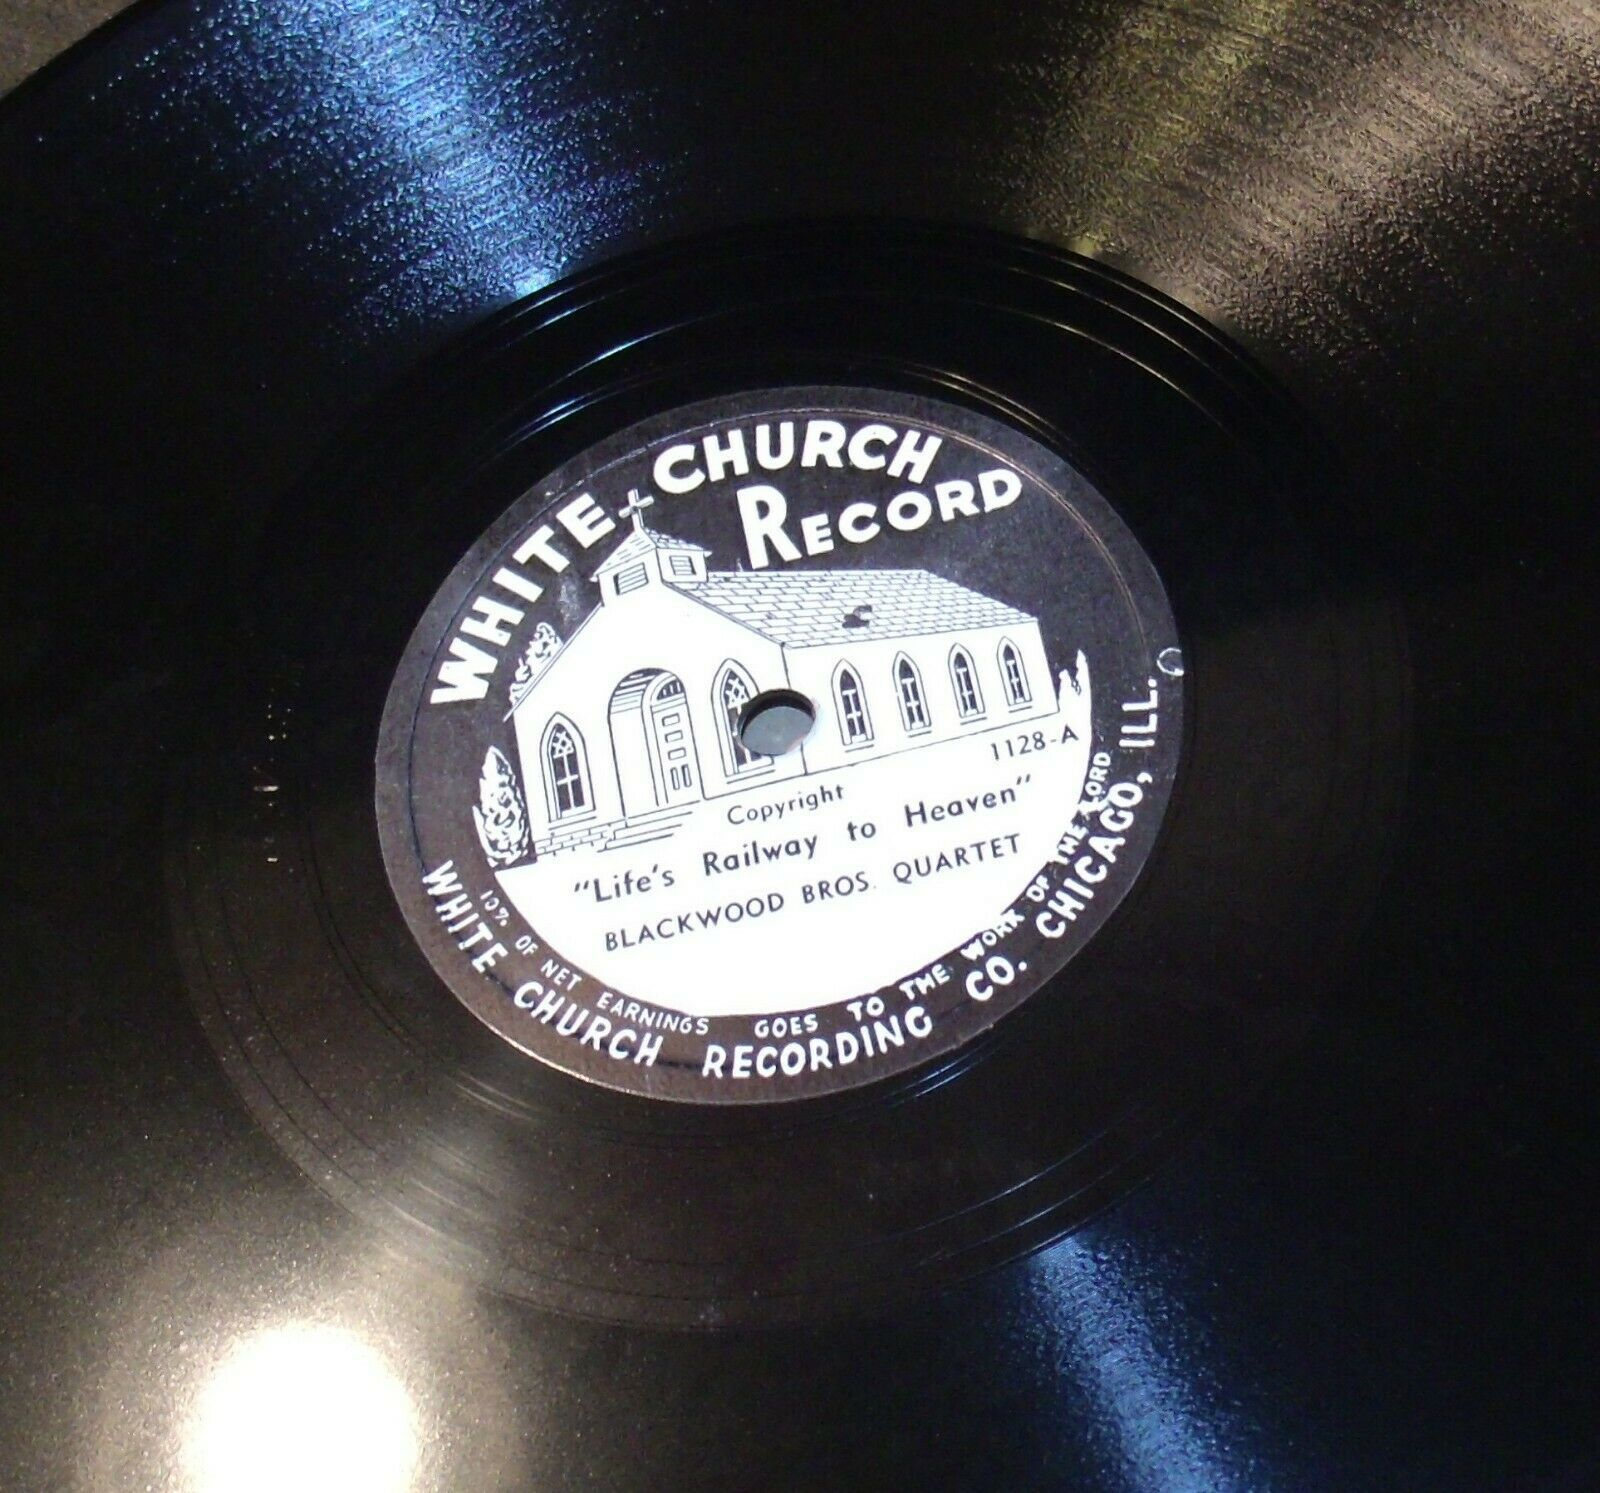 White Church Record # 1128 AA-191720L Vintage Collectible